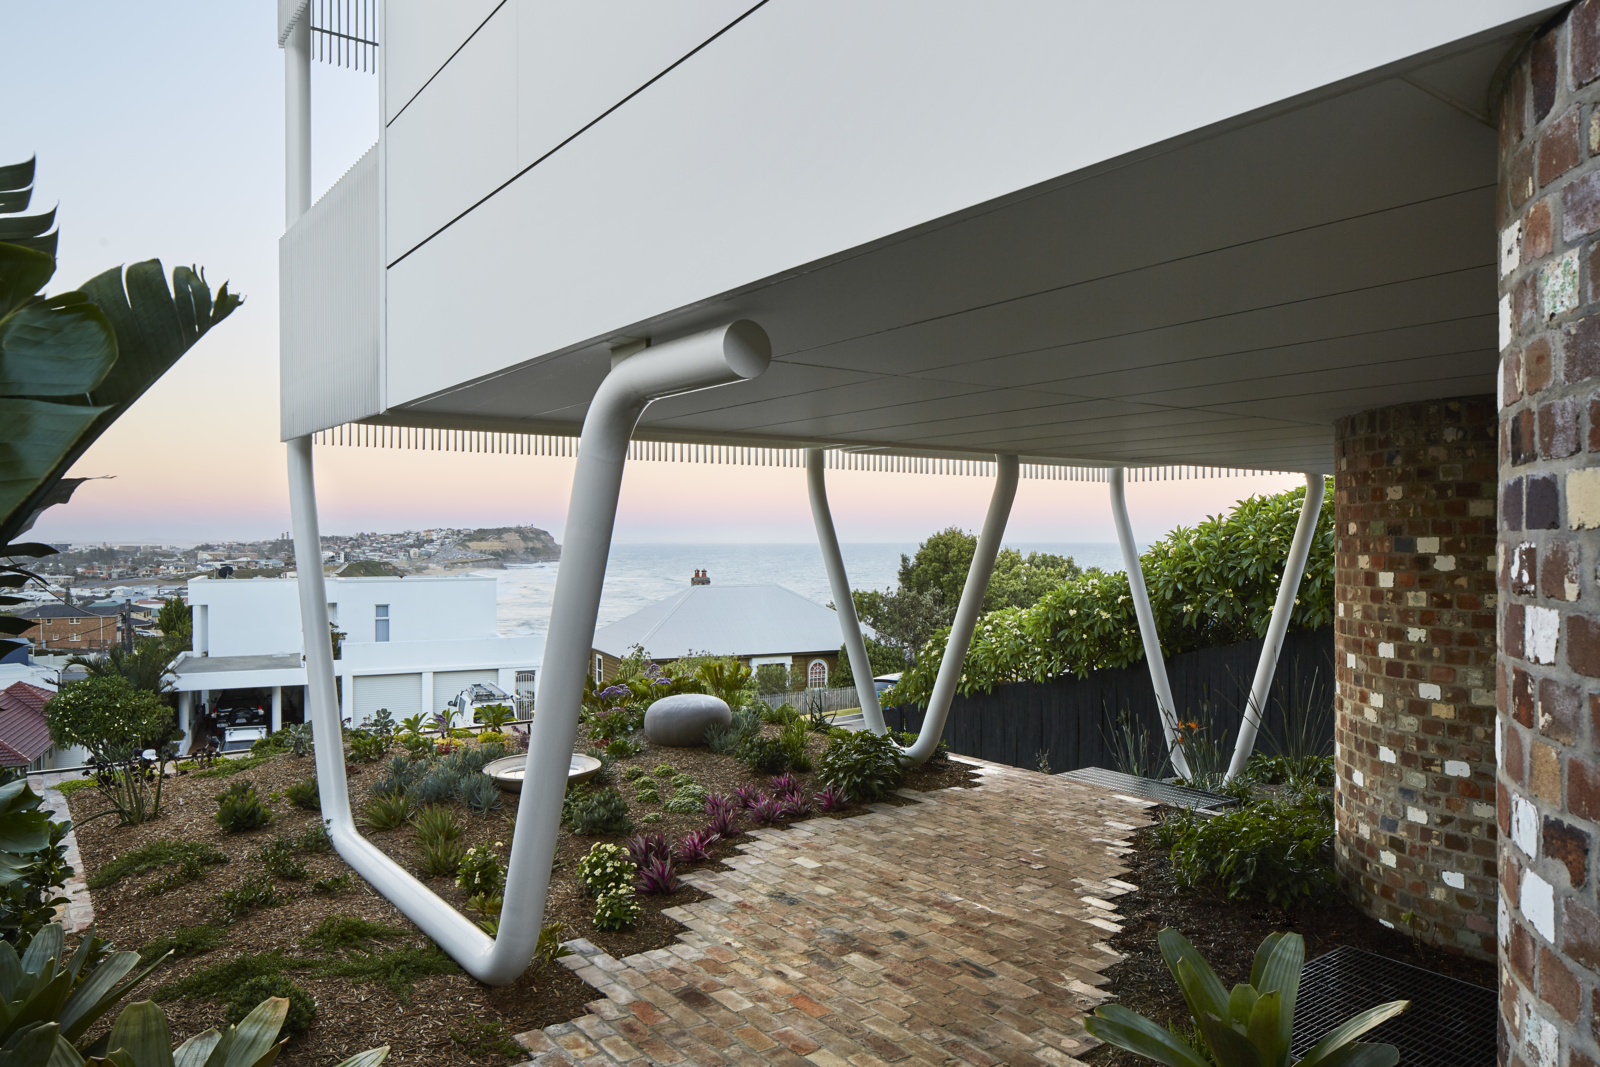 Outdoor, Gardens, Pavers Patio, Porch, Deck, Garden, Front Yard, and Walkways The top floor of the home is propped on three large steel supports that resembles paperclips.  Photos from A Futuristic Abode in Australia Draws Inspiration From Star Wars